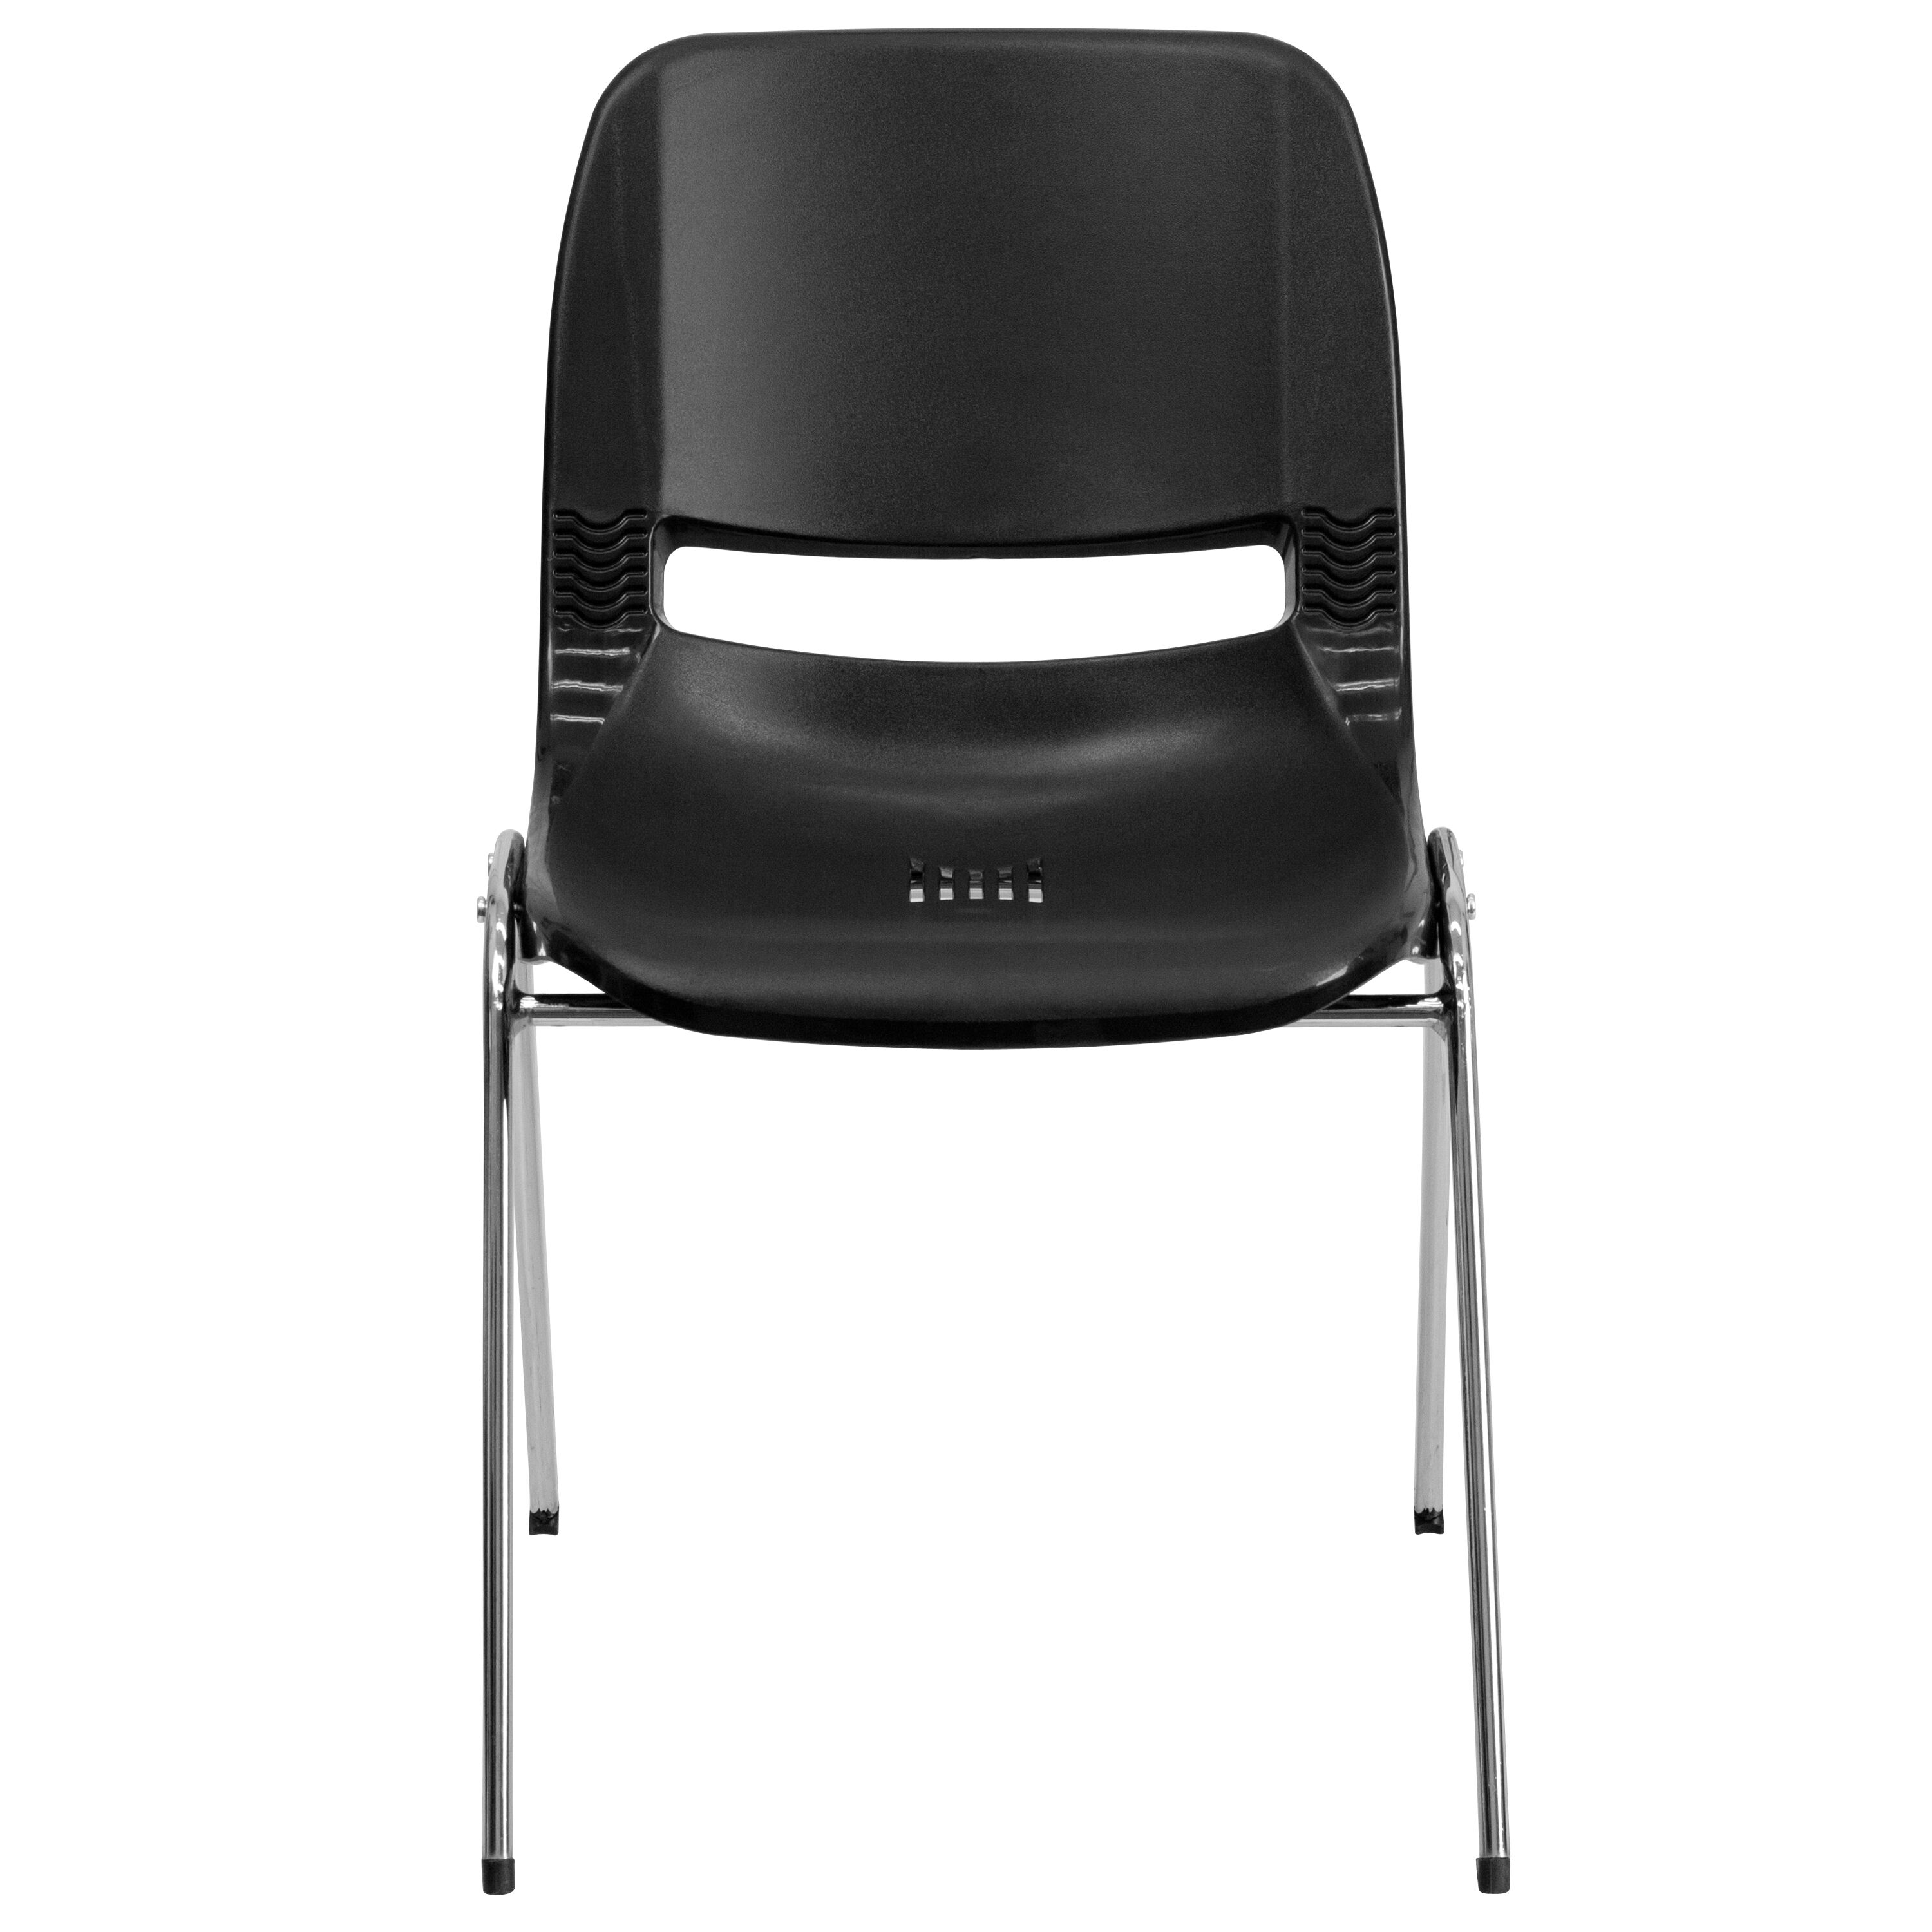 staples stacking chairs big for sale flash furniture hercules series 880 lb capacity black